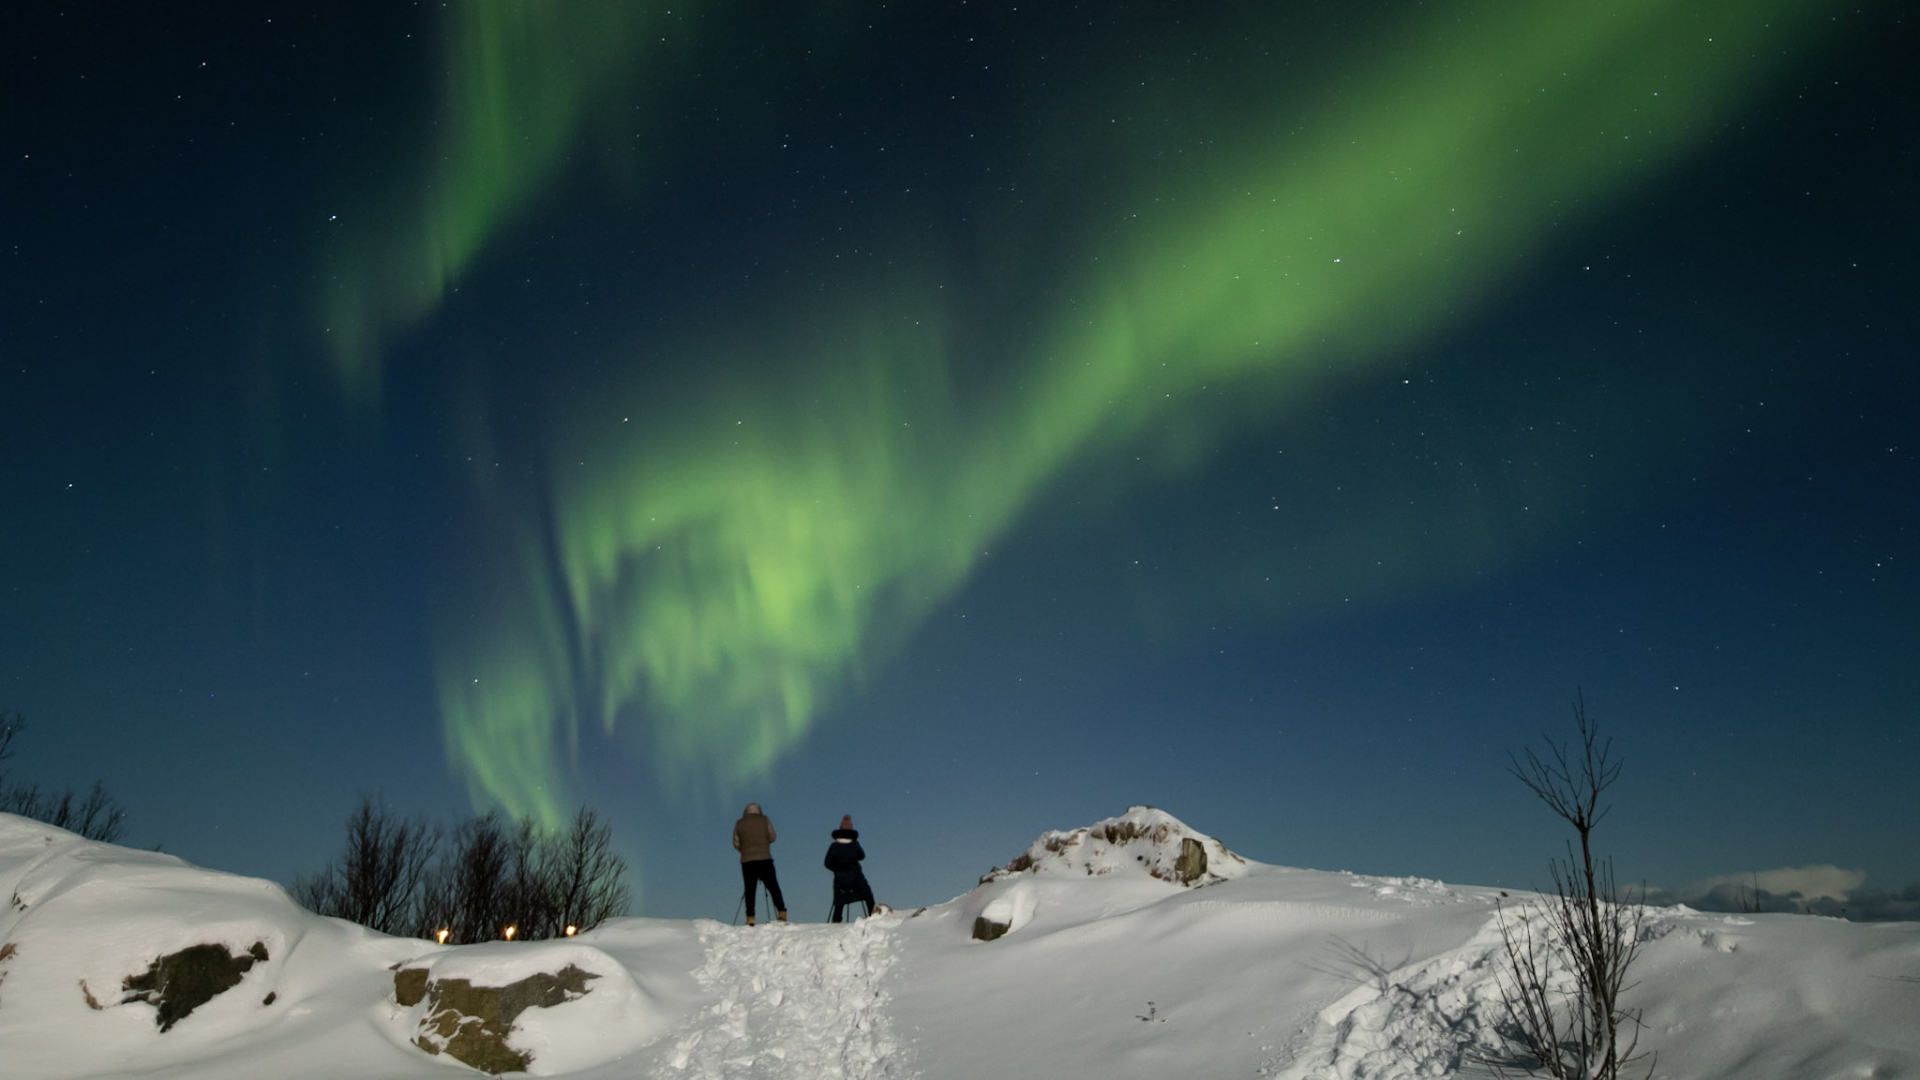 Man and woman watching the Northern Lights